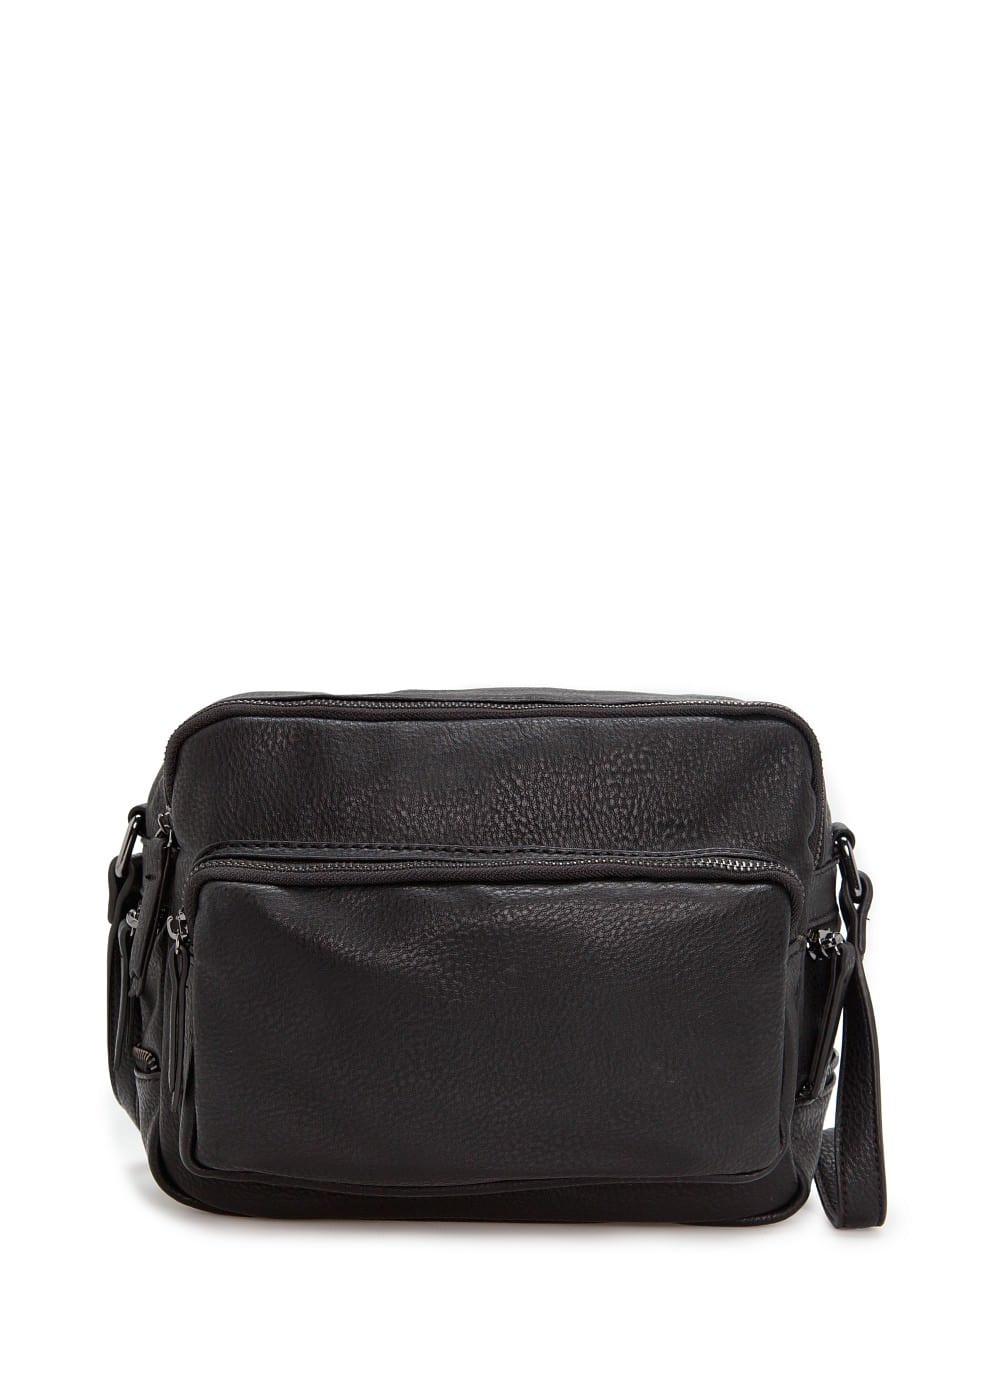 Zip cross body bag